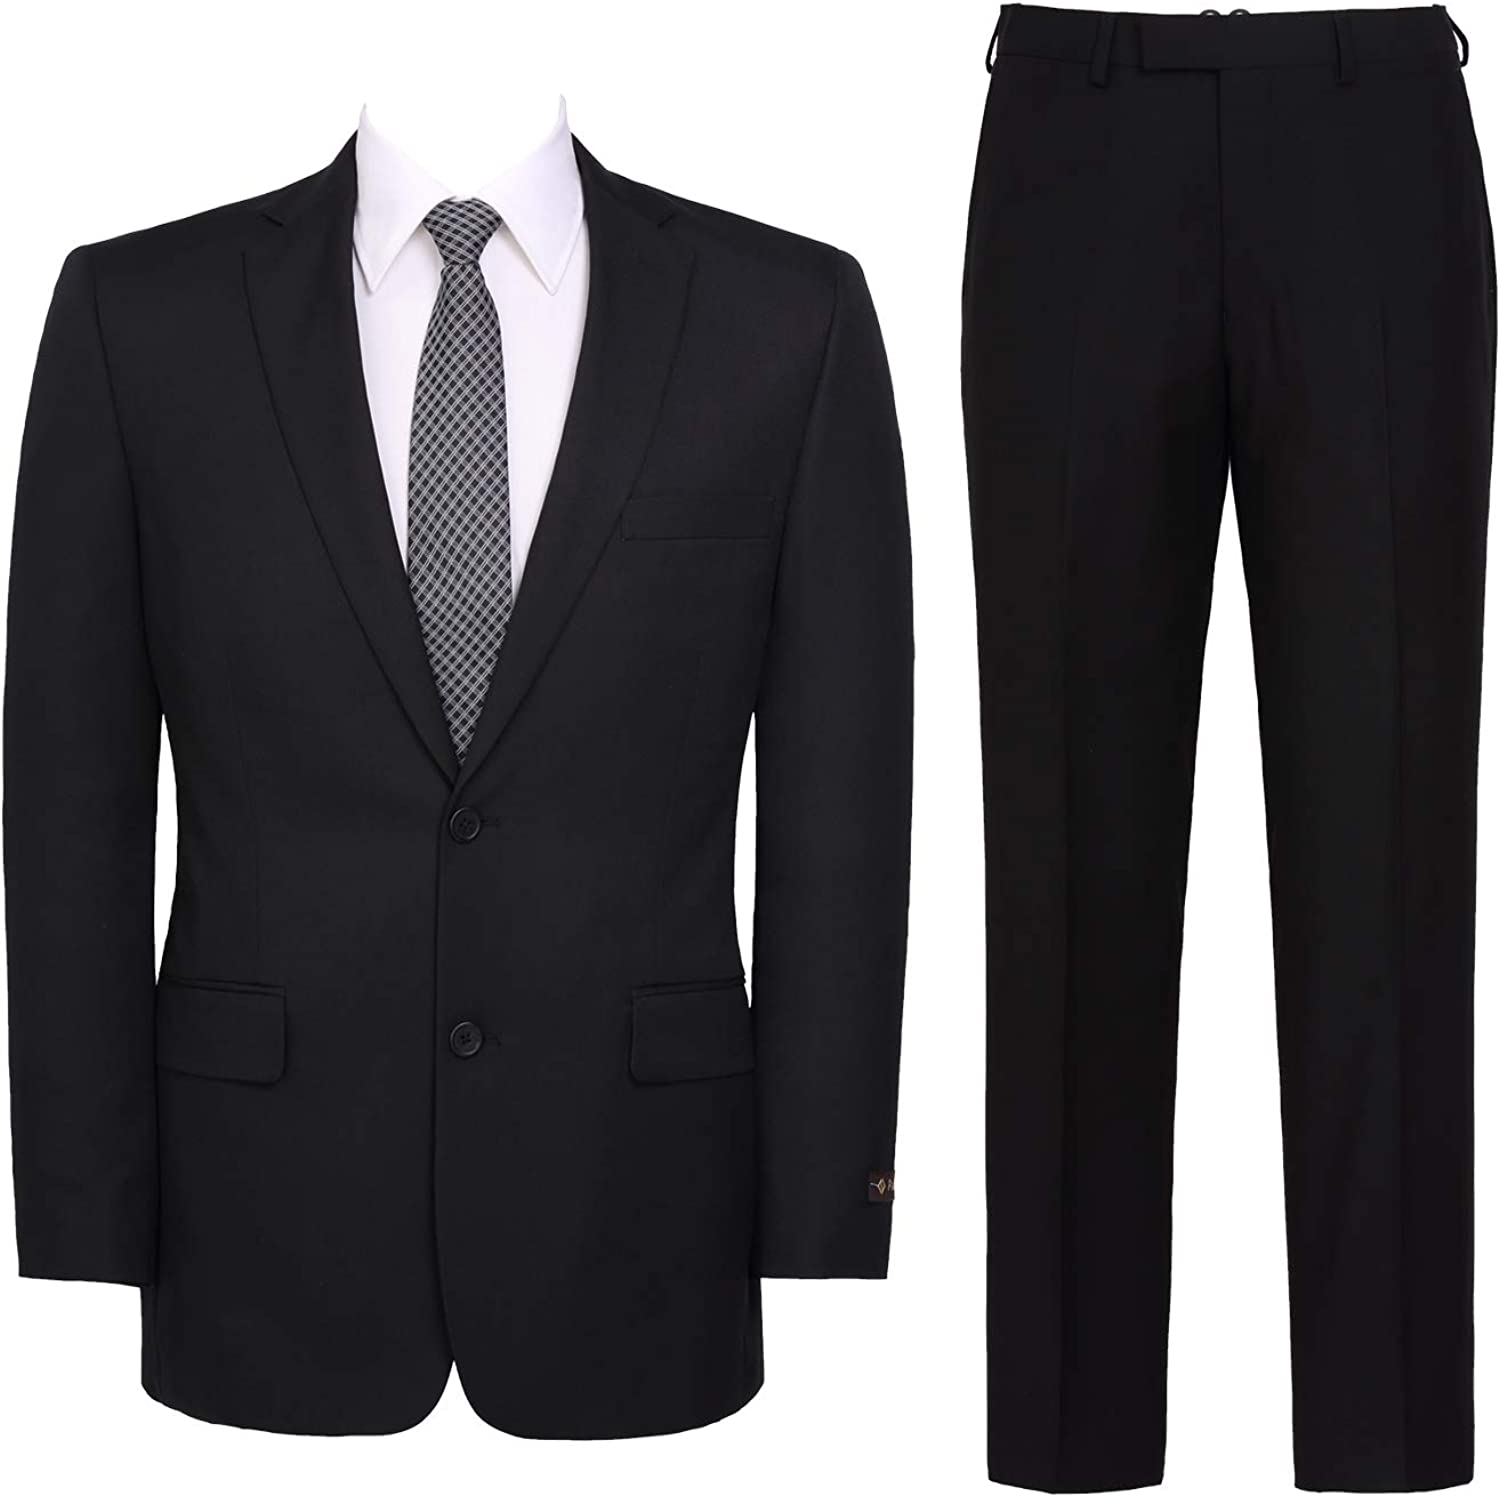 Mens Suit 2-Piece Classic Fit Solid Color Single Breasted 2 Buttons Jacket Dress Pants